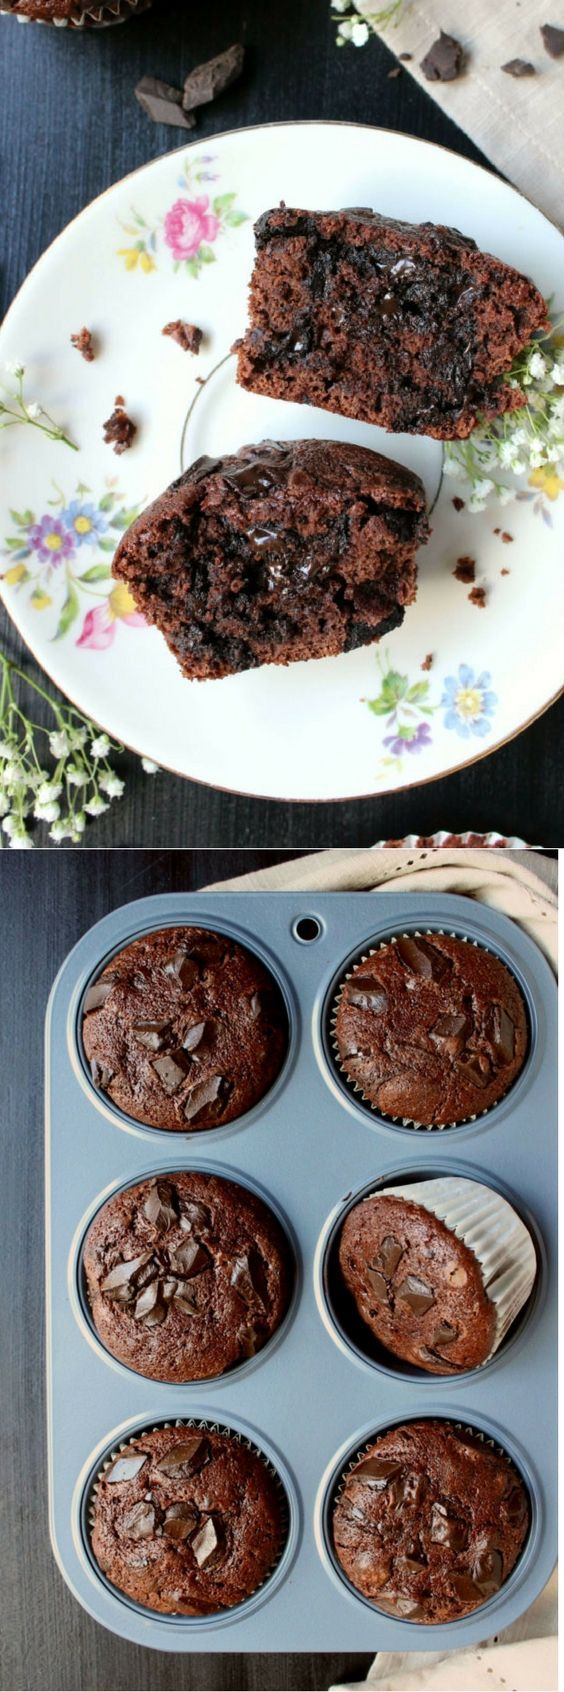 Healthy, flexible, and easily eaten on-the-go, these small-batch Double Chocolate Chunk Greek Yogurt Muffins are perfect whenever you need them! (Chocolate Banana Yogurt)